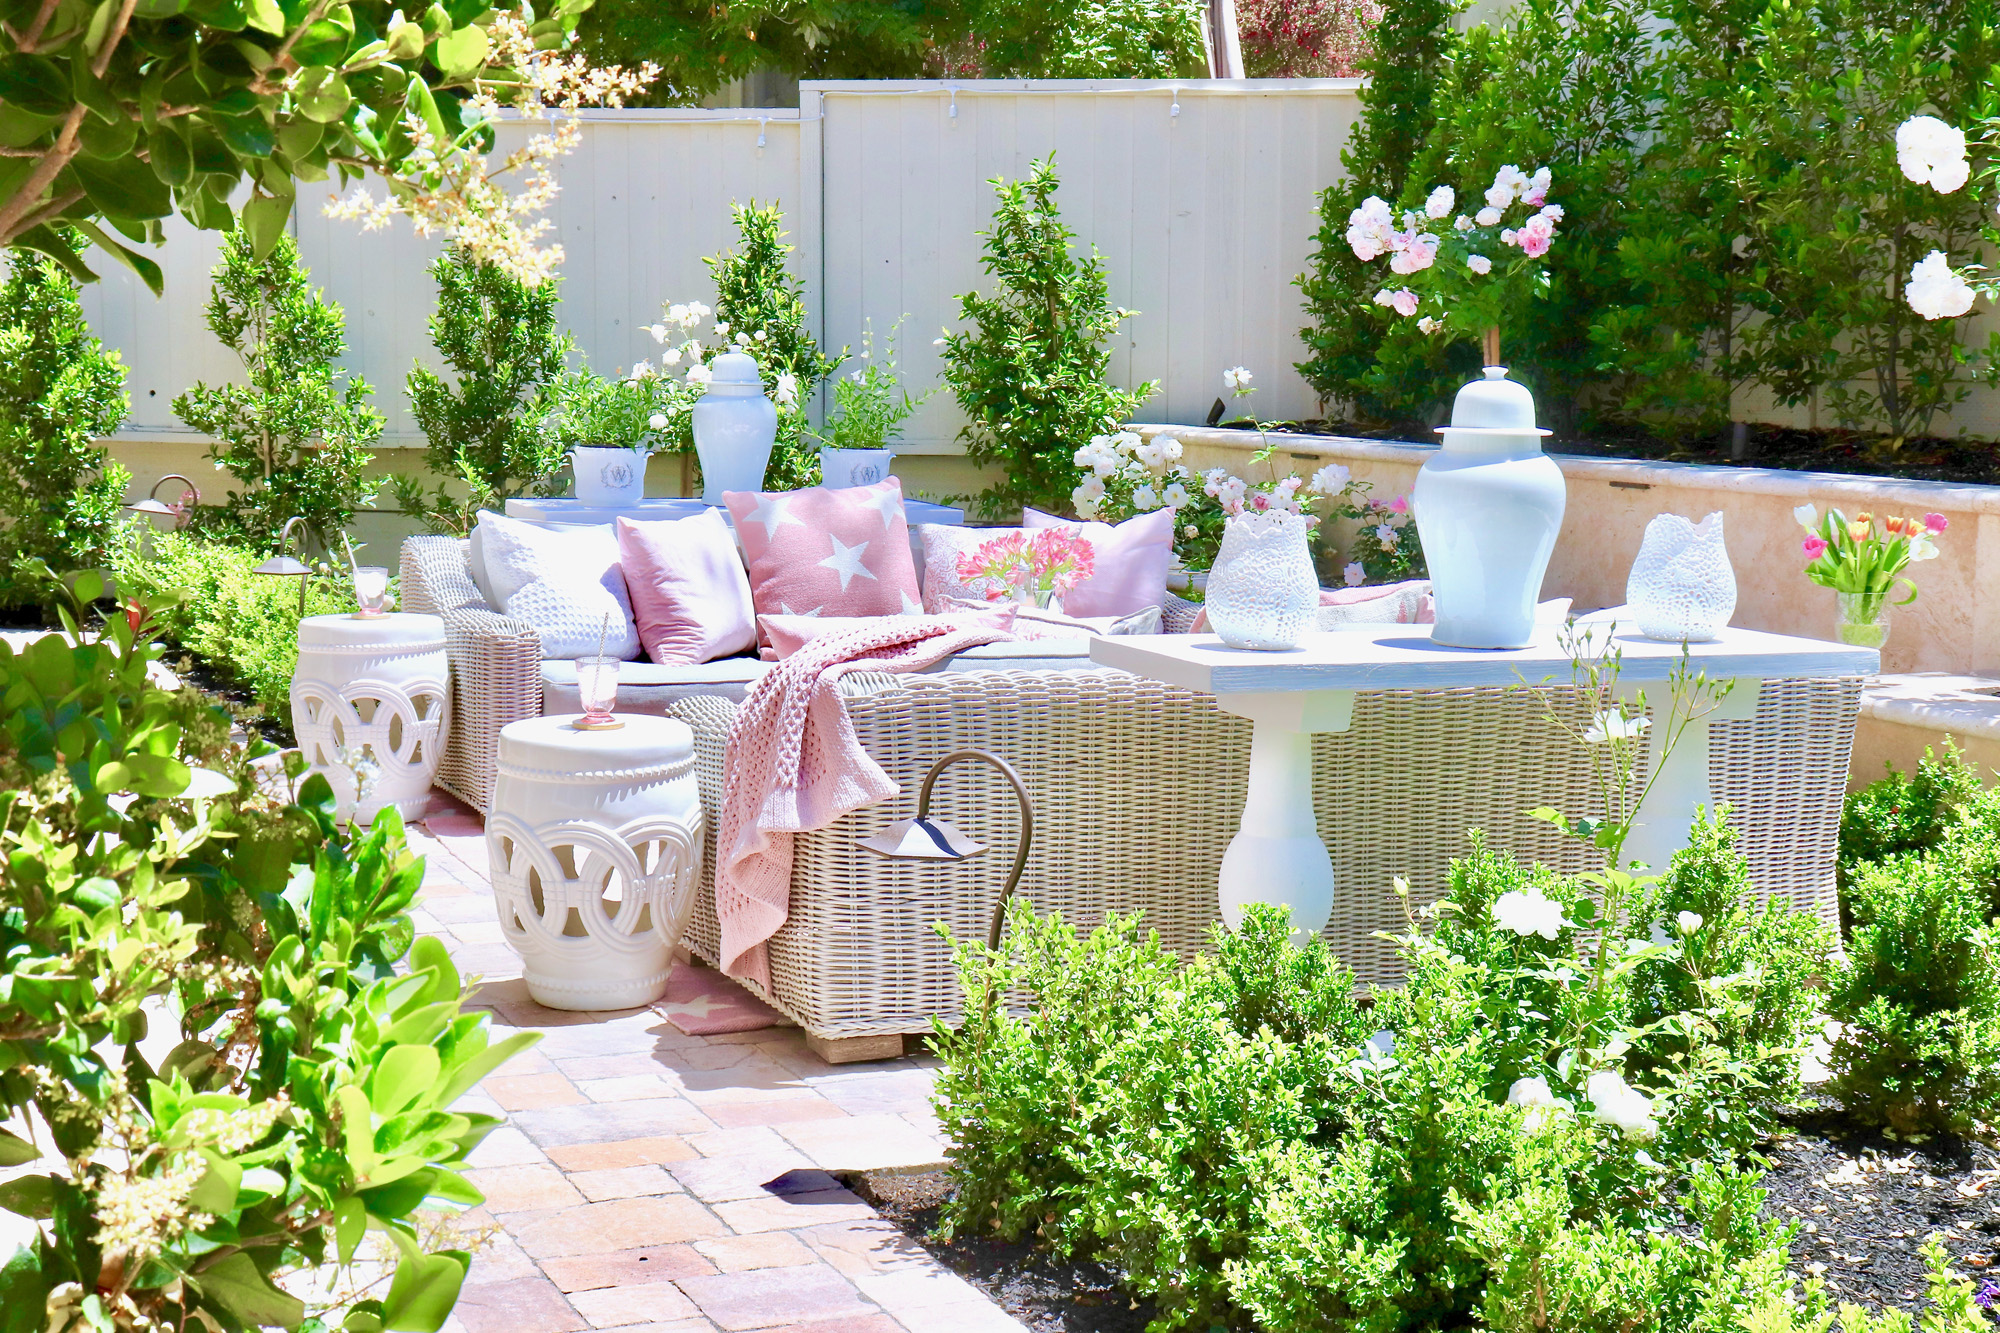 Loveliest Looks of Summer - Fashion, Food, and Decor!